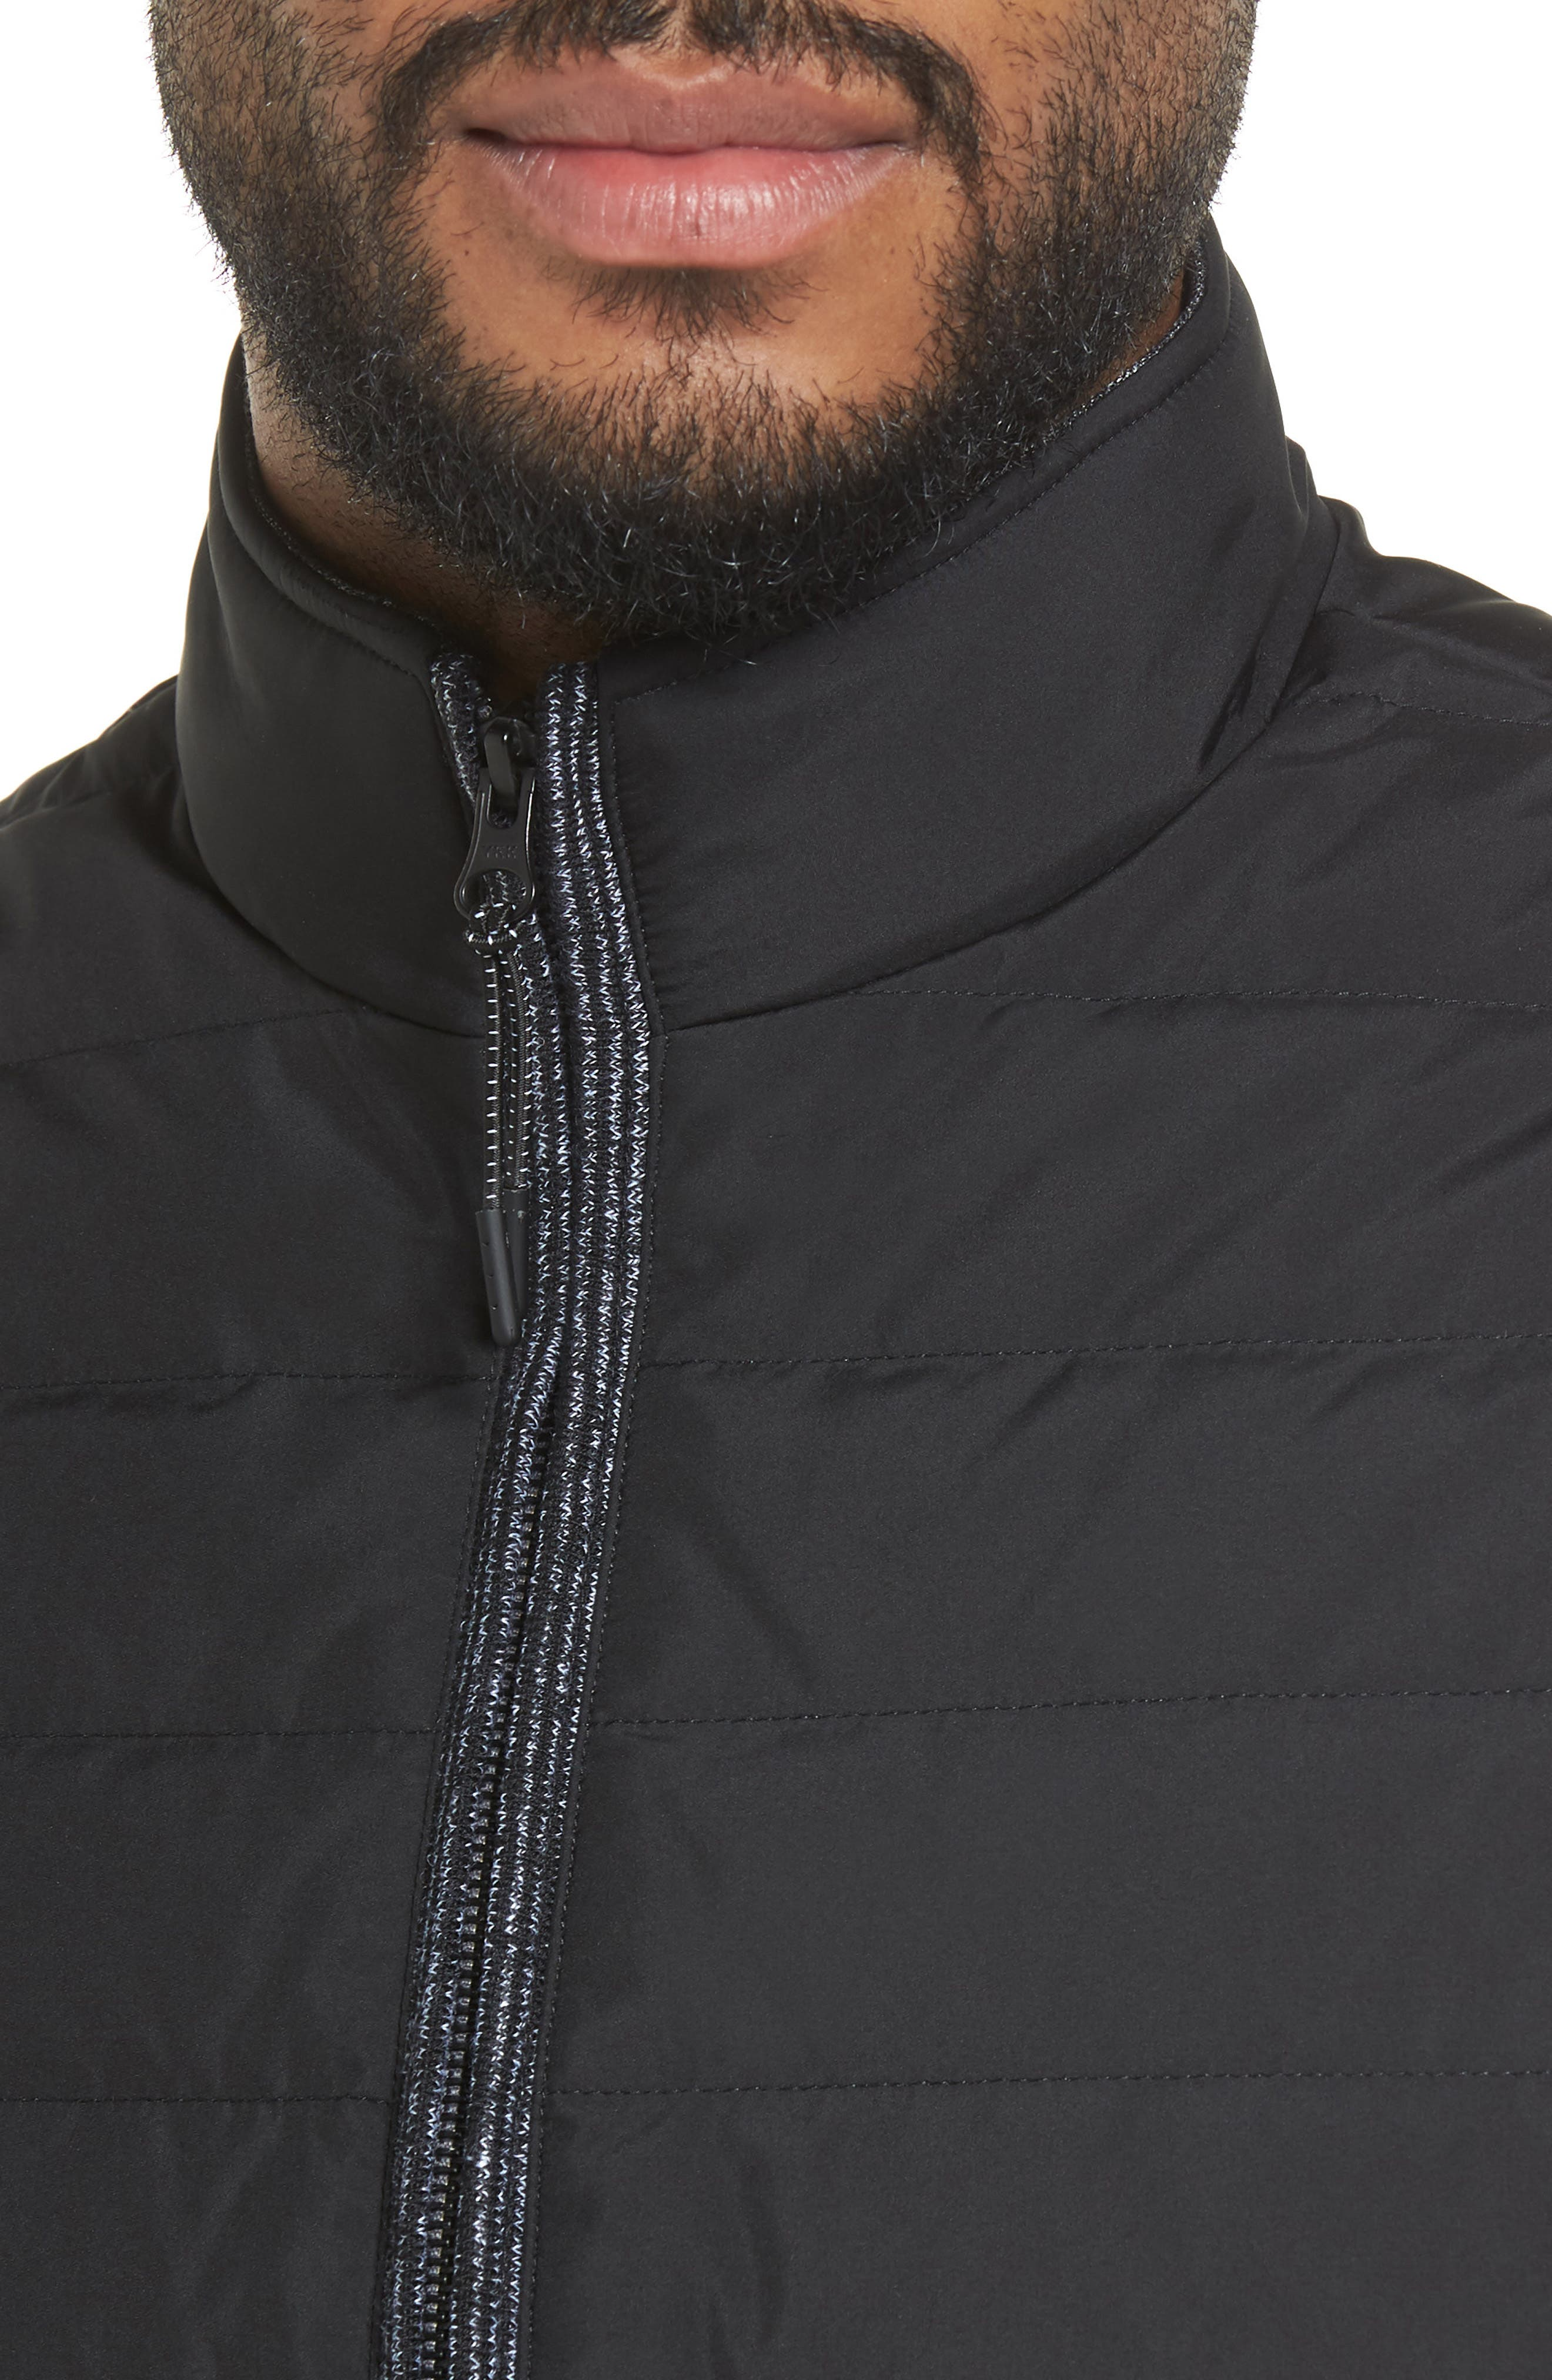 Jozeph Quilted Down Vest,                             Alternate thumbnail 4, color,                             001